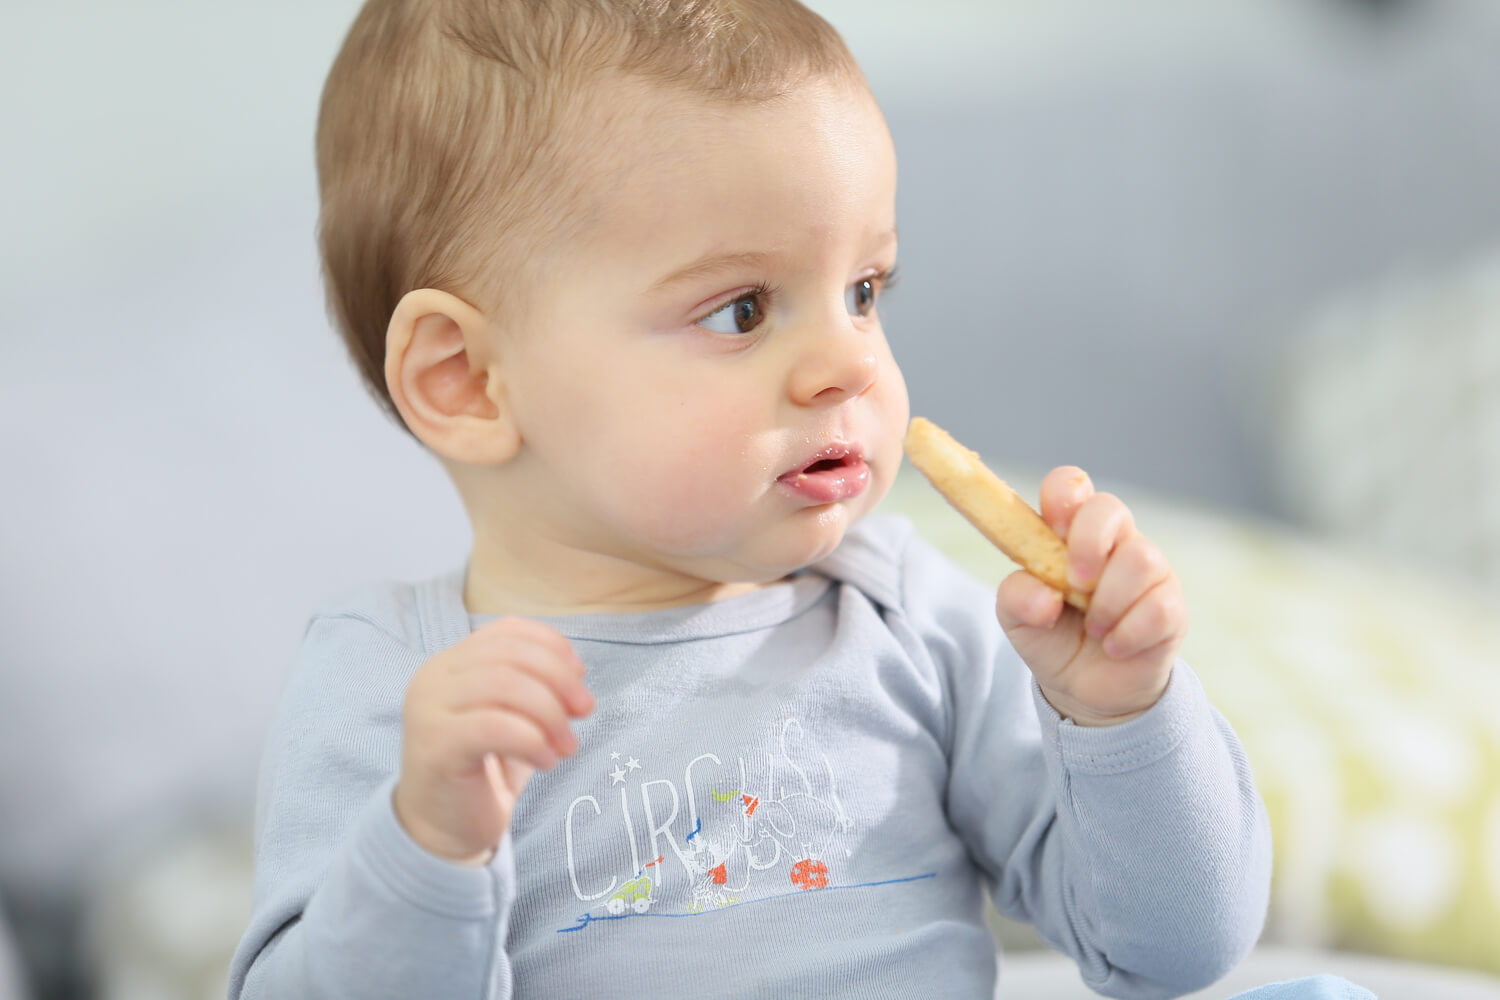 Biscuits For Babies- Good or Bad?